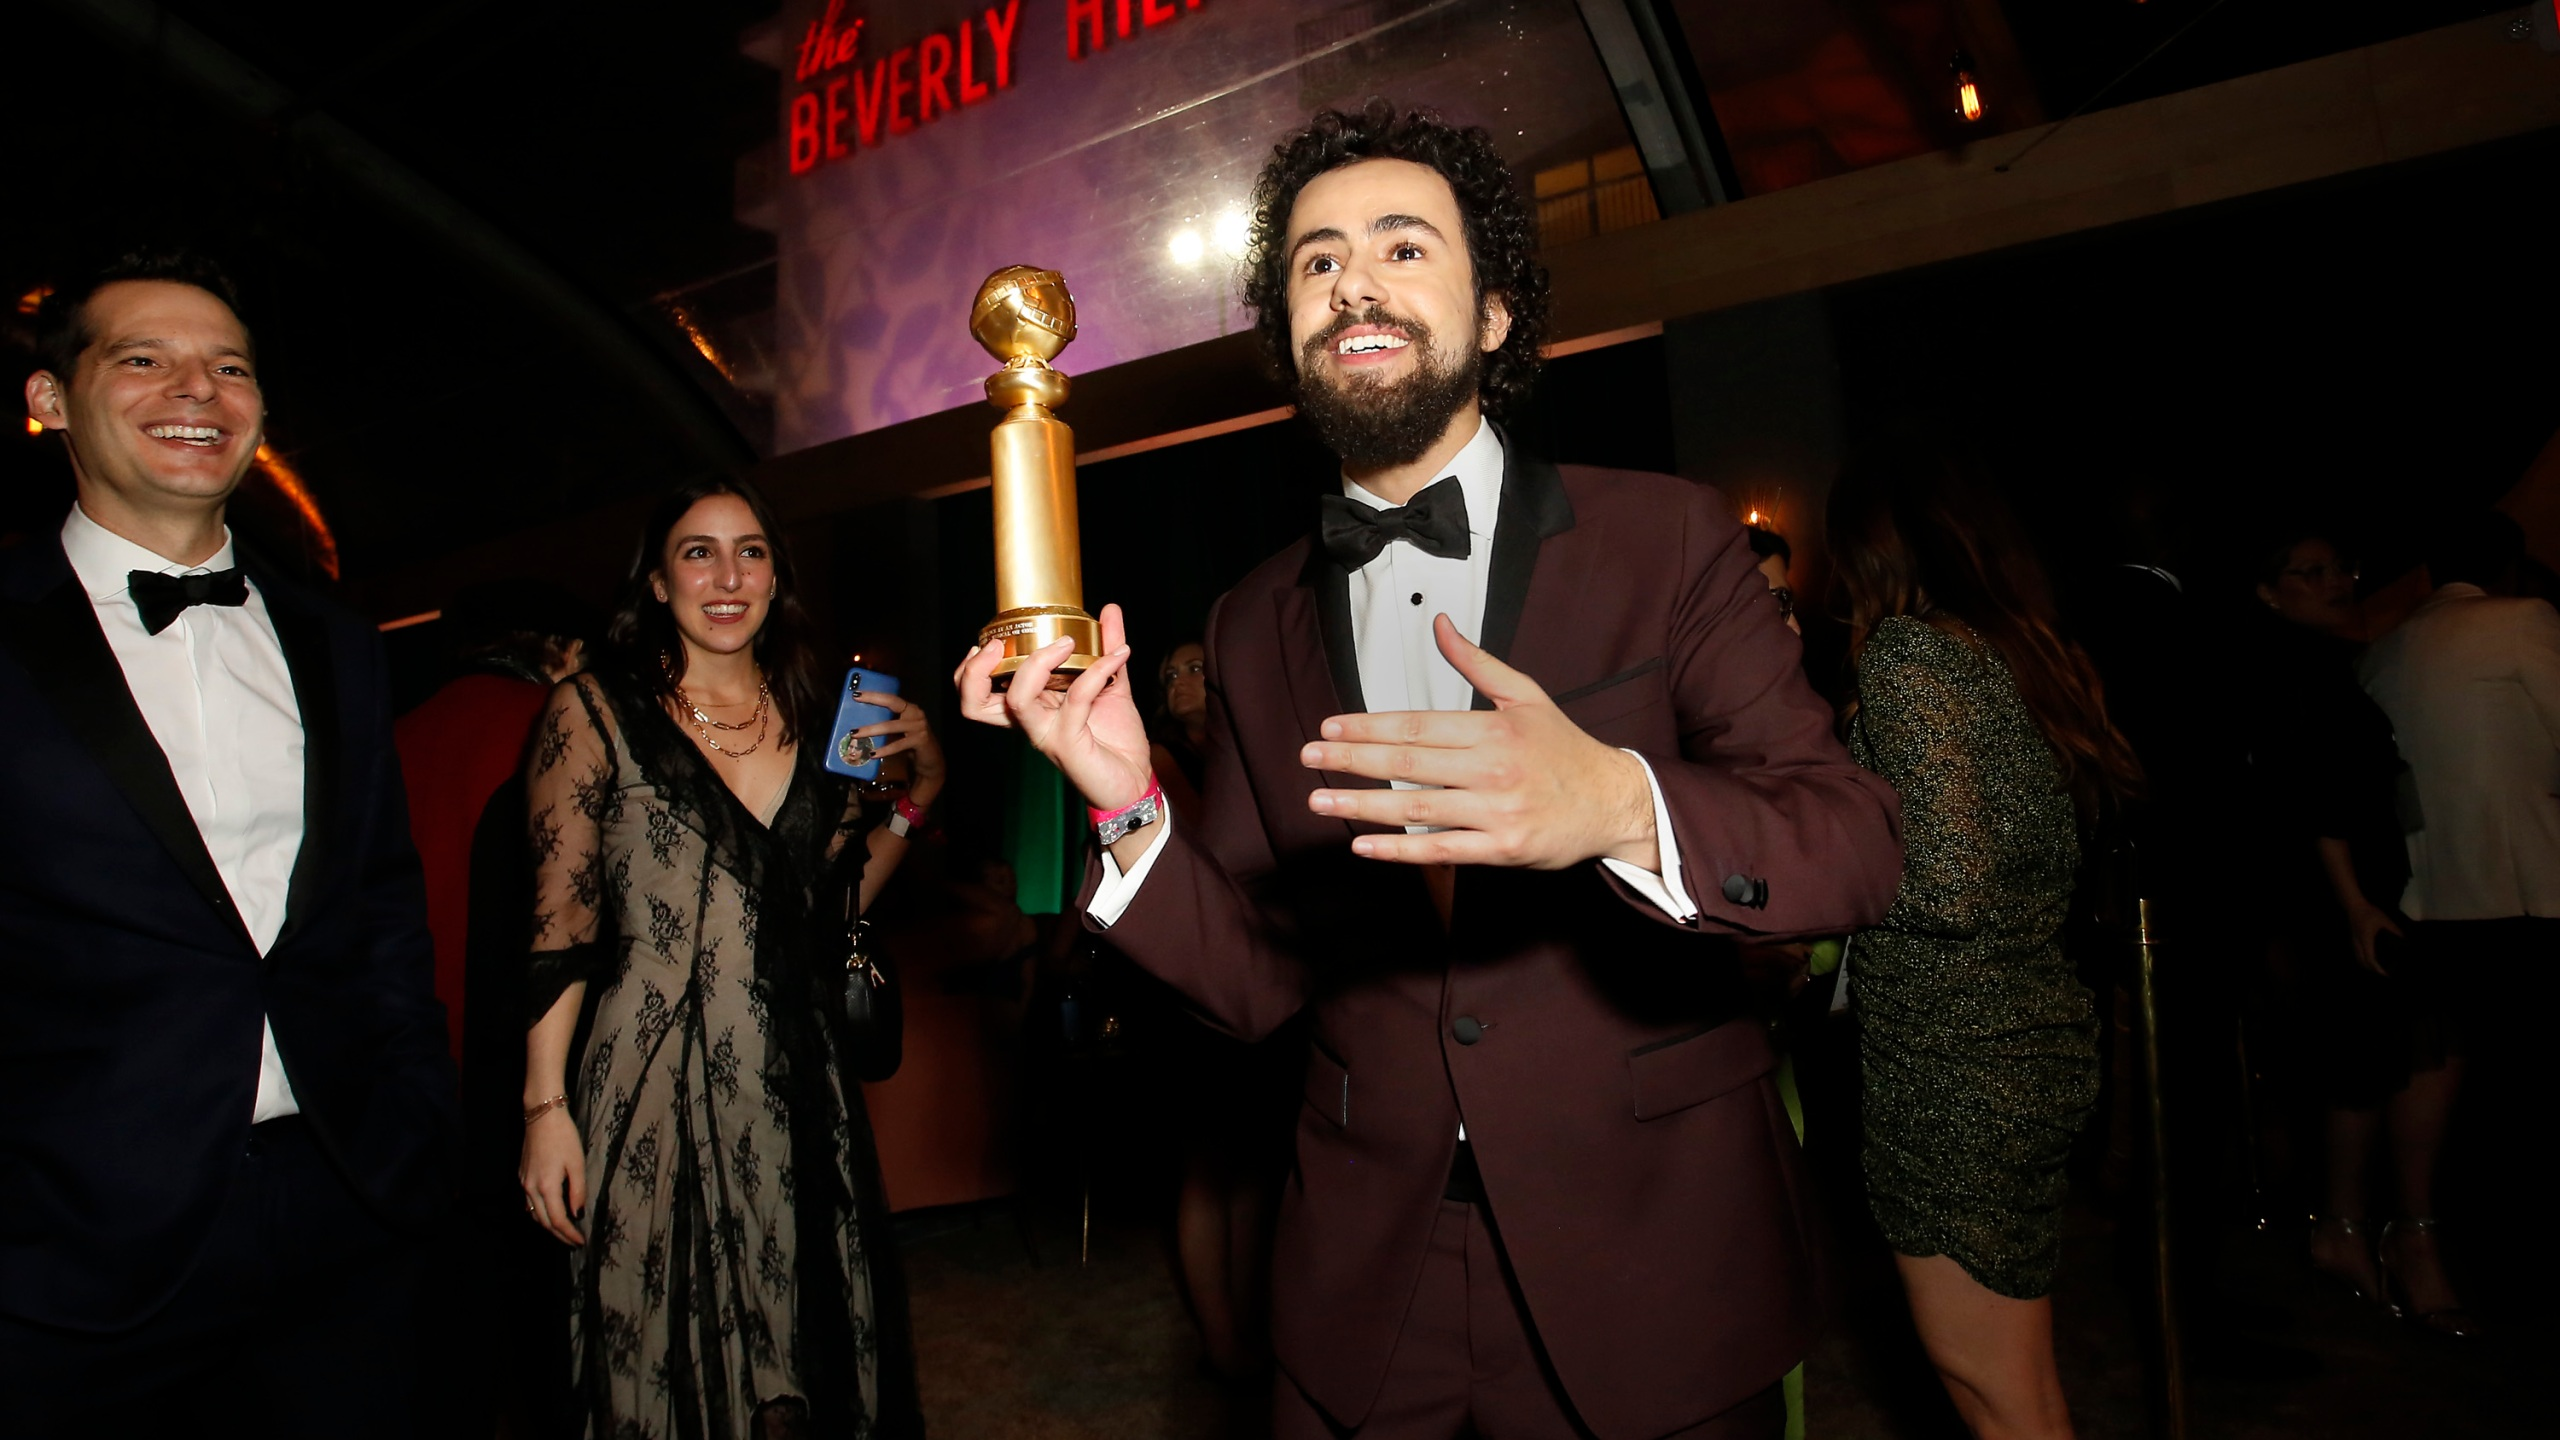 Ramy Youssef, Golden Globe winner for Best Performance by an Actor in a Television Series - Musical or Comedy, attends the 2020 Walt Disney Company Post-Golden Globe Awards Show celebration at The Beverly Hilton Hotel on January 5, 2020. (Rachel Murray/Getty Images for Hulu)